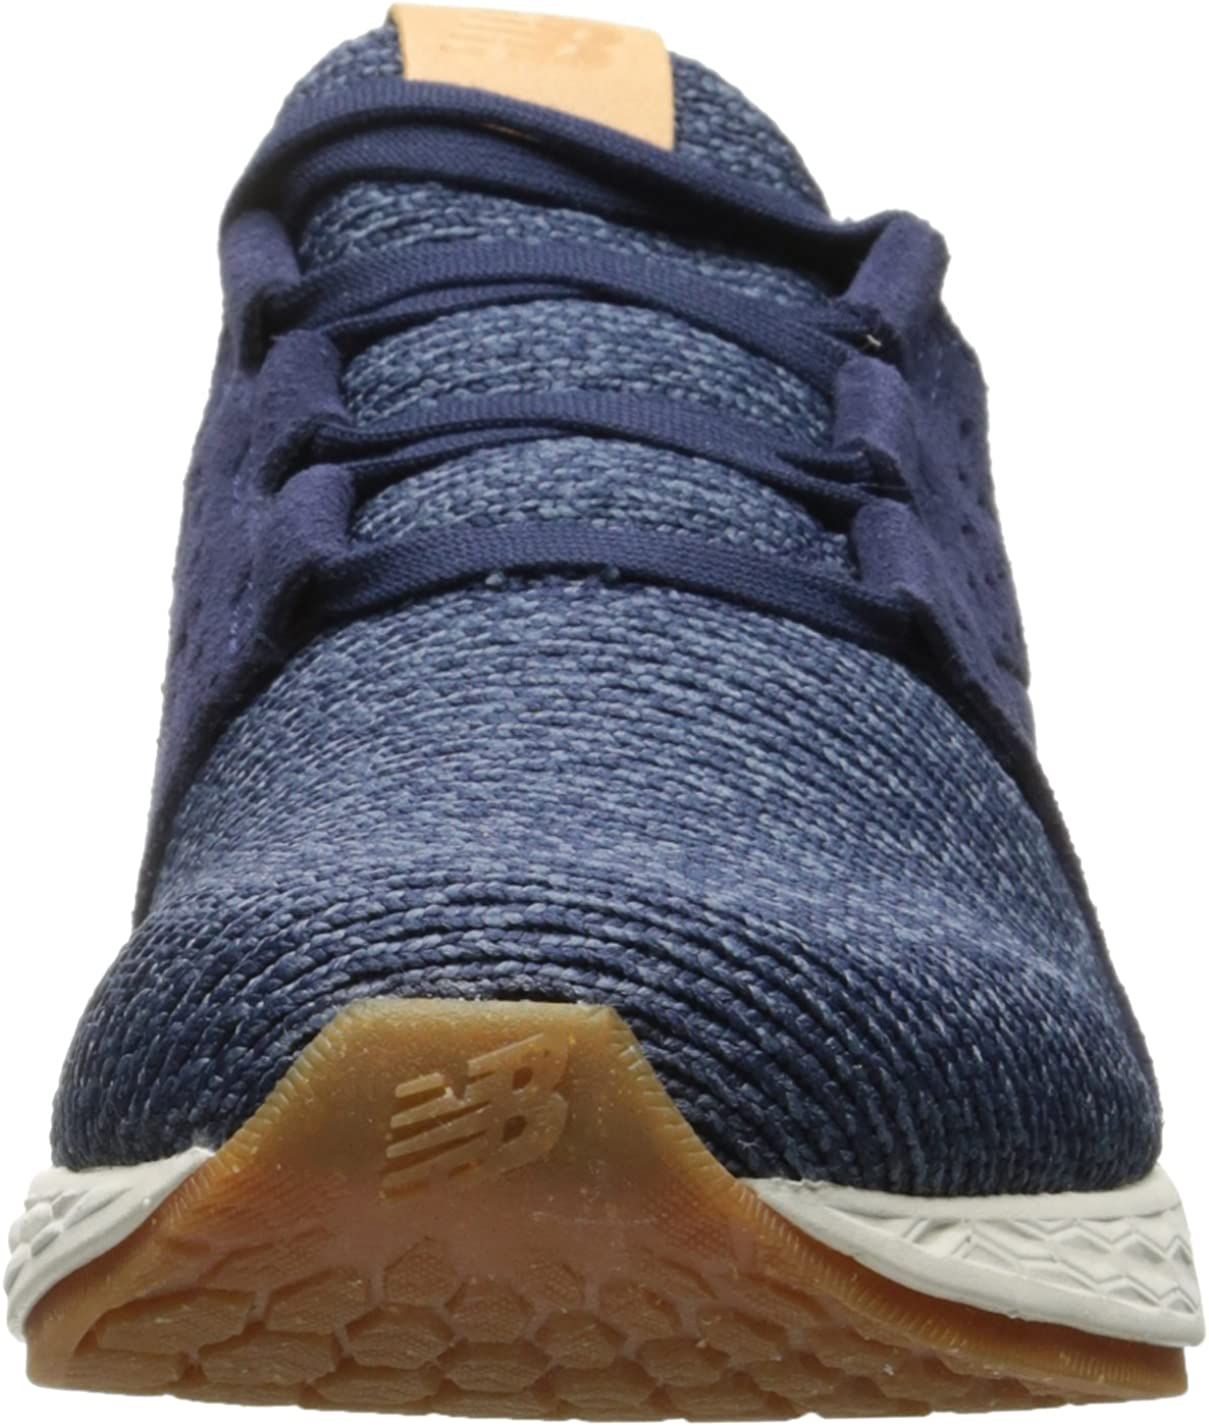 New Balance Women s Fresh Foam Cruz v1 Running Shoe, Vintage Indigo Sea Salt, 9 B US